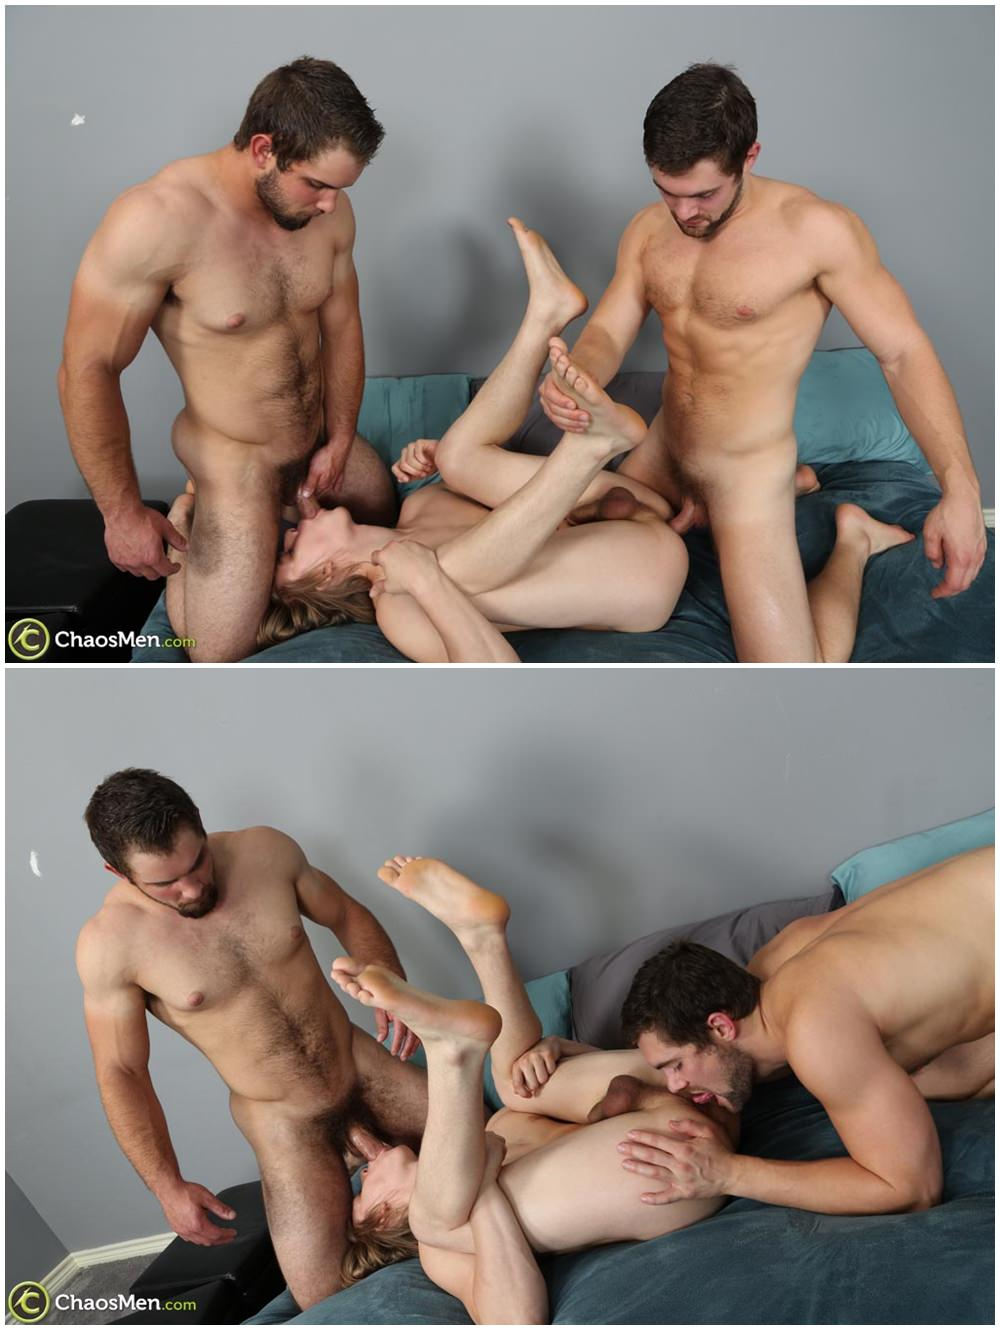 Two studs fuck twink bareback and breed his tight ass Chaosmen raw threesome gay porn xxx (4)